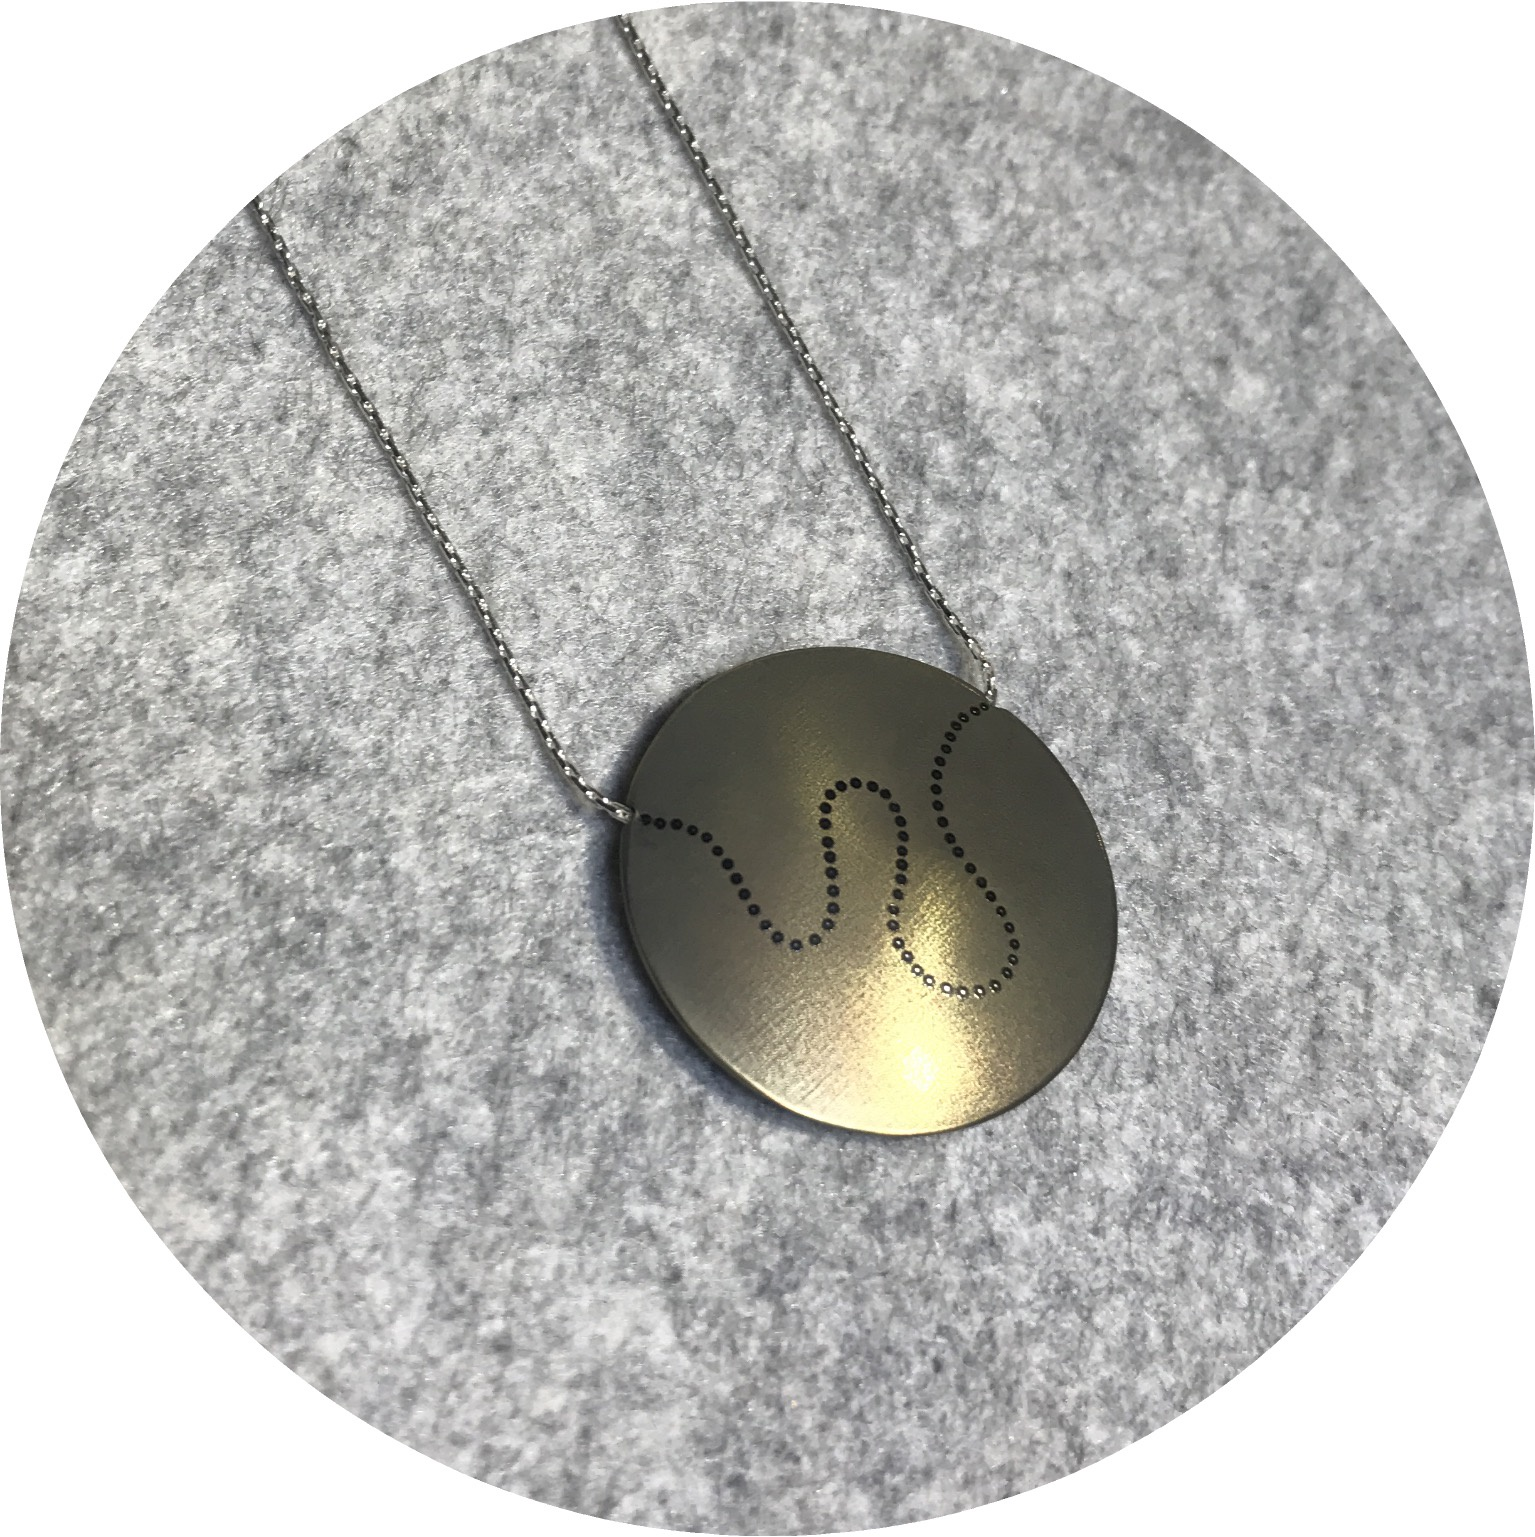 Sarah Murphy - 'Meander' Necklace in Gold Anodised Titanium and Sterling Silver Chain